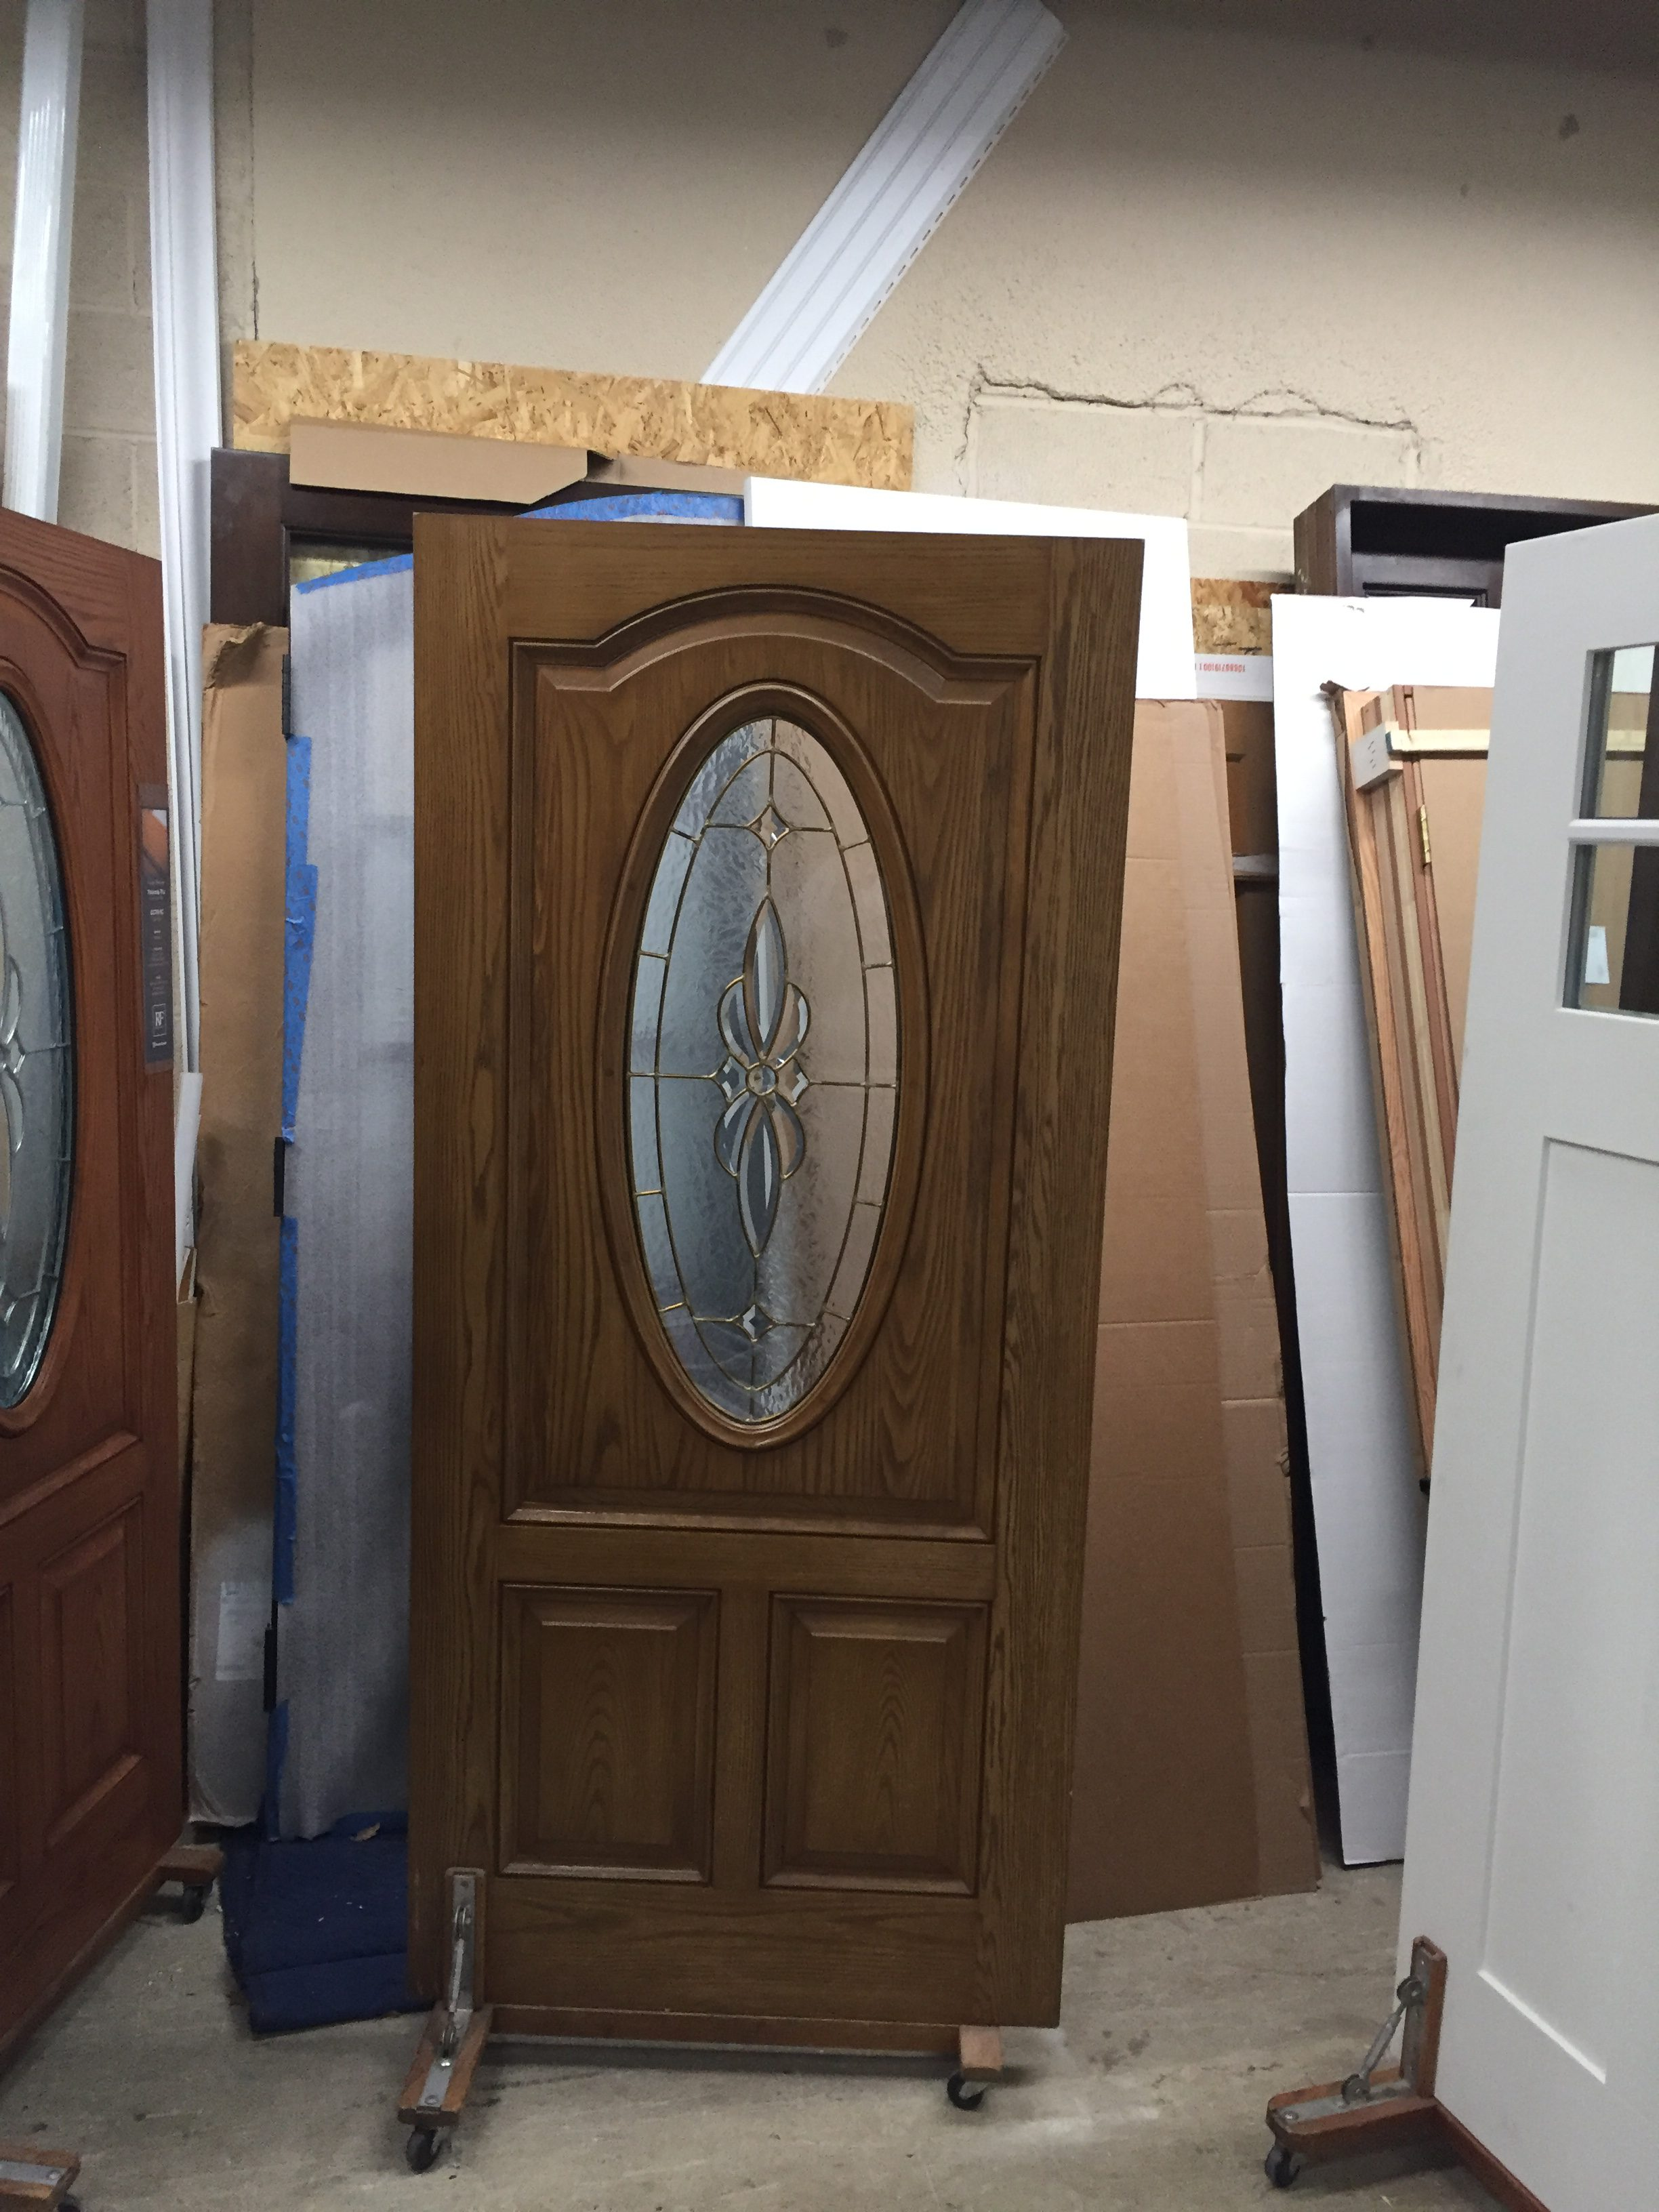 ... Classic Craft Fiberglass Door Slab Interior Stained: Light Oak/Exterior  Stained : Dark Walnut Door Is Unhanded Can Be Fir Into Existing Frame Or  Frame ...